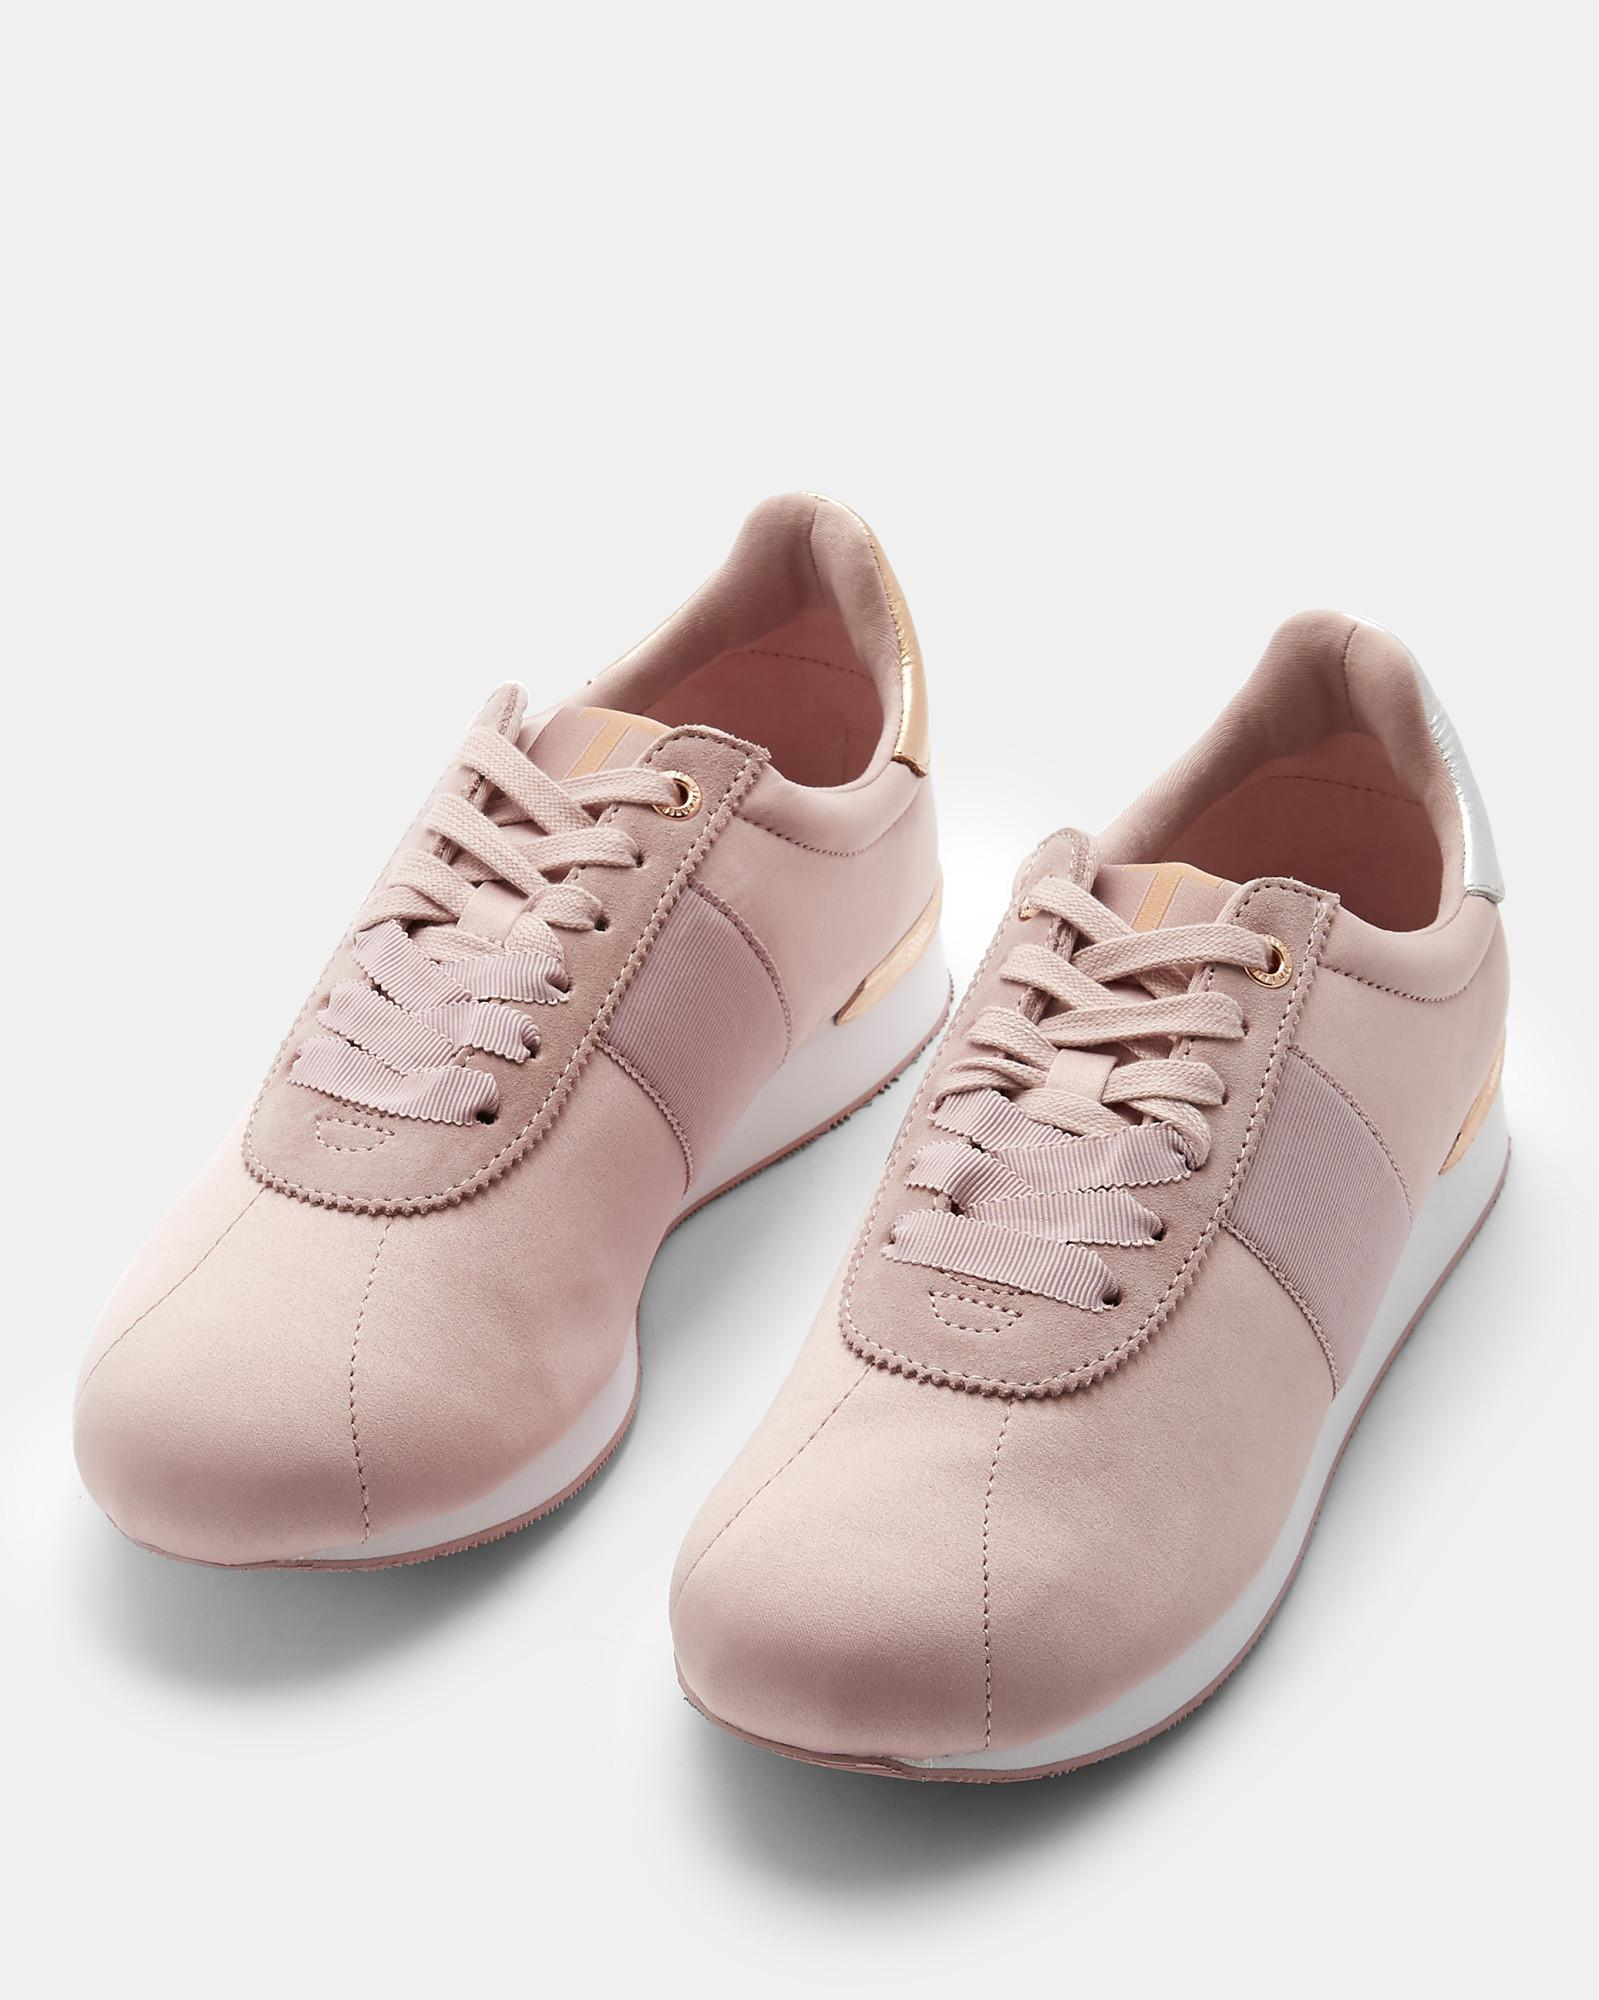 Retro Runner Trainers in Light Pink